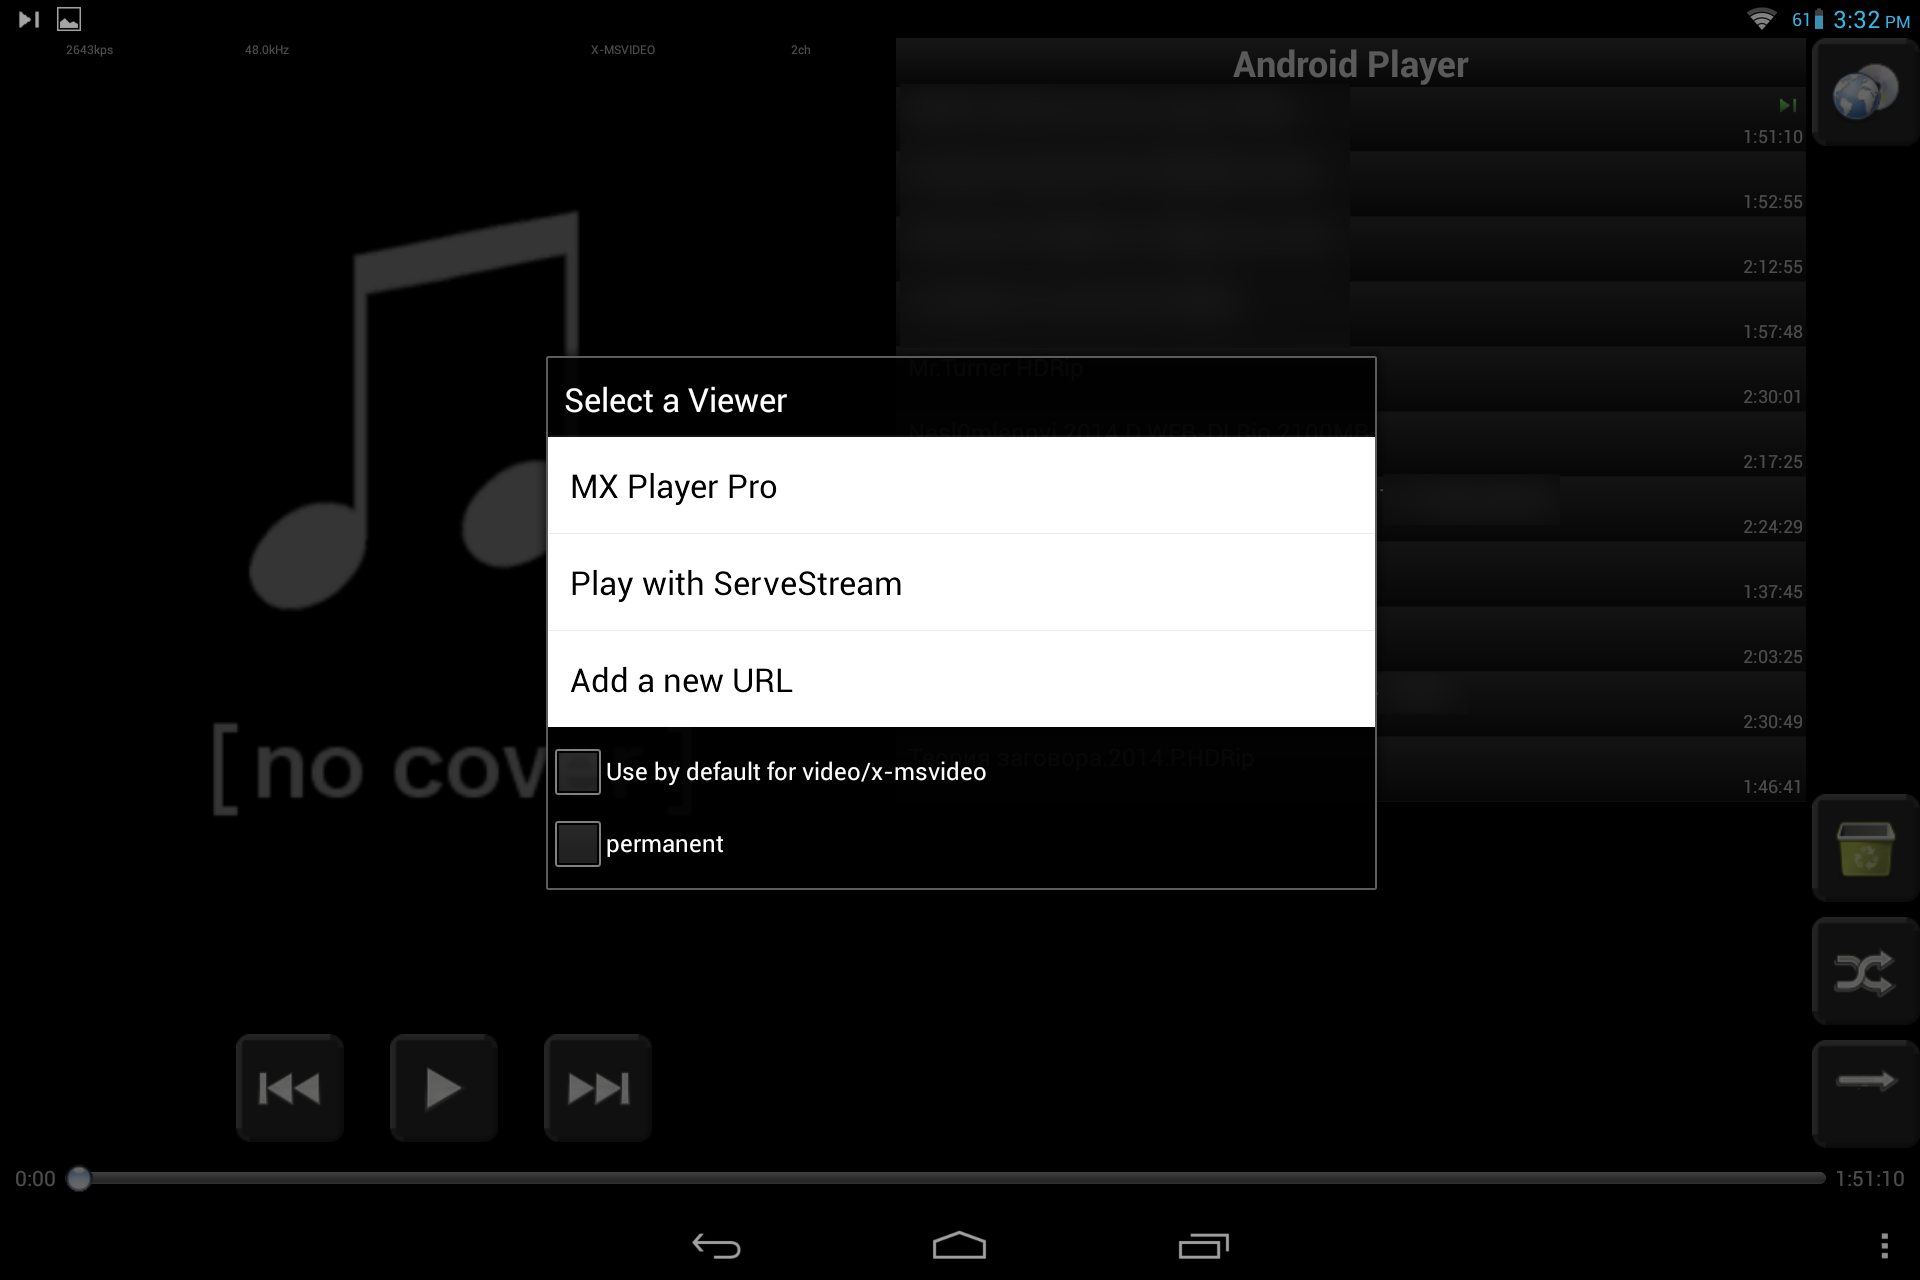 How to watch movies from your DLNA server on Android